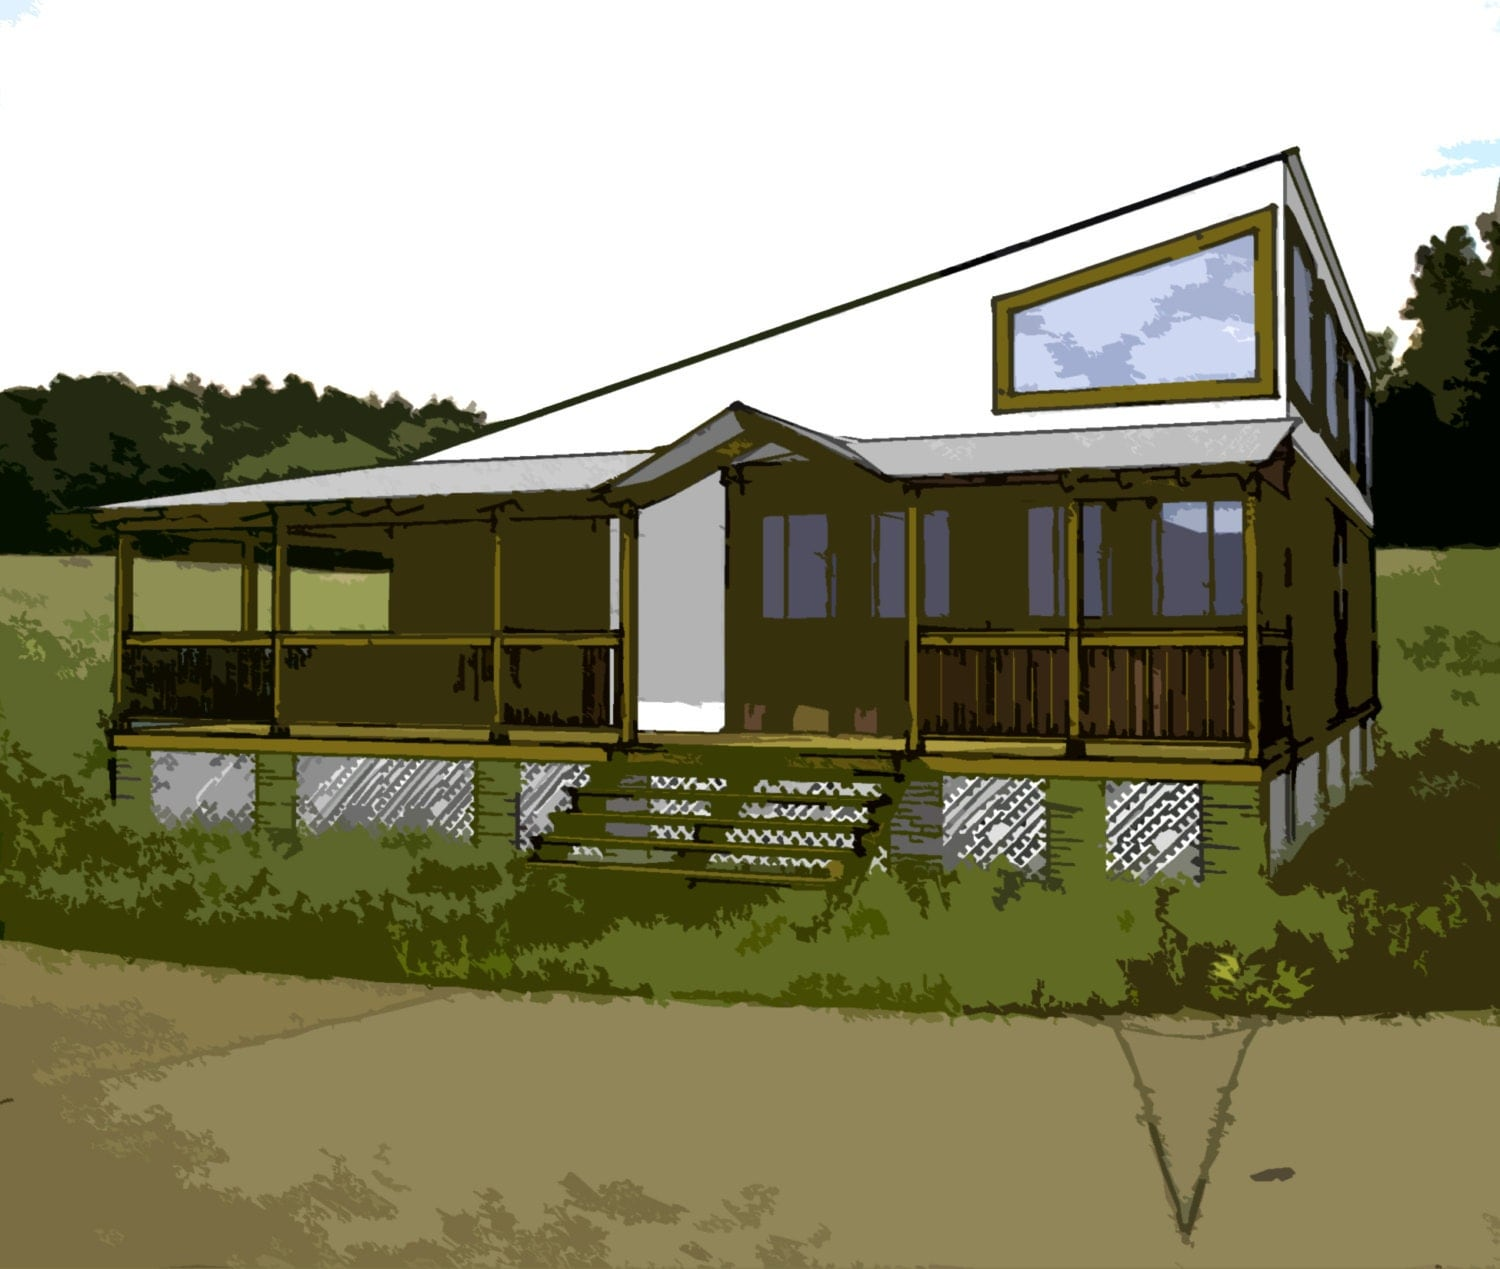 Shipping Container Plans 3 Bed 2 Bath Schematic Design 1140